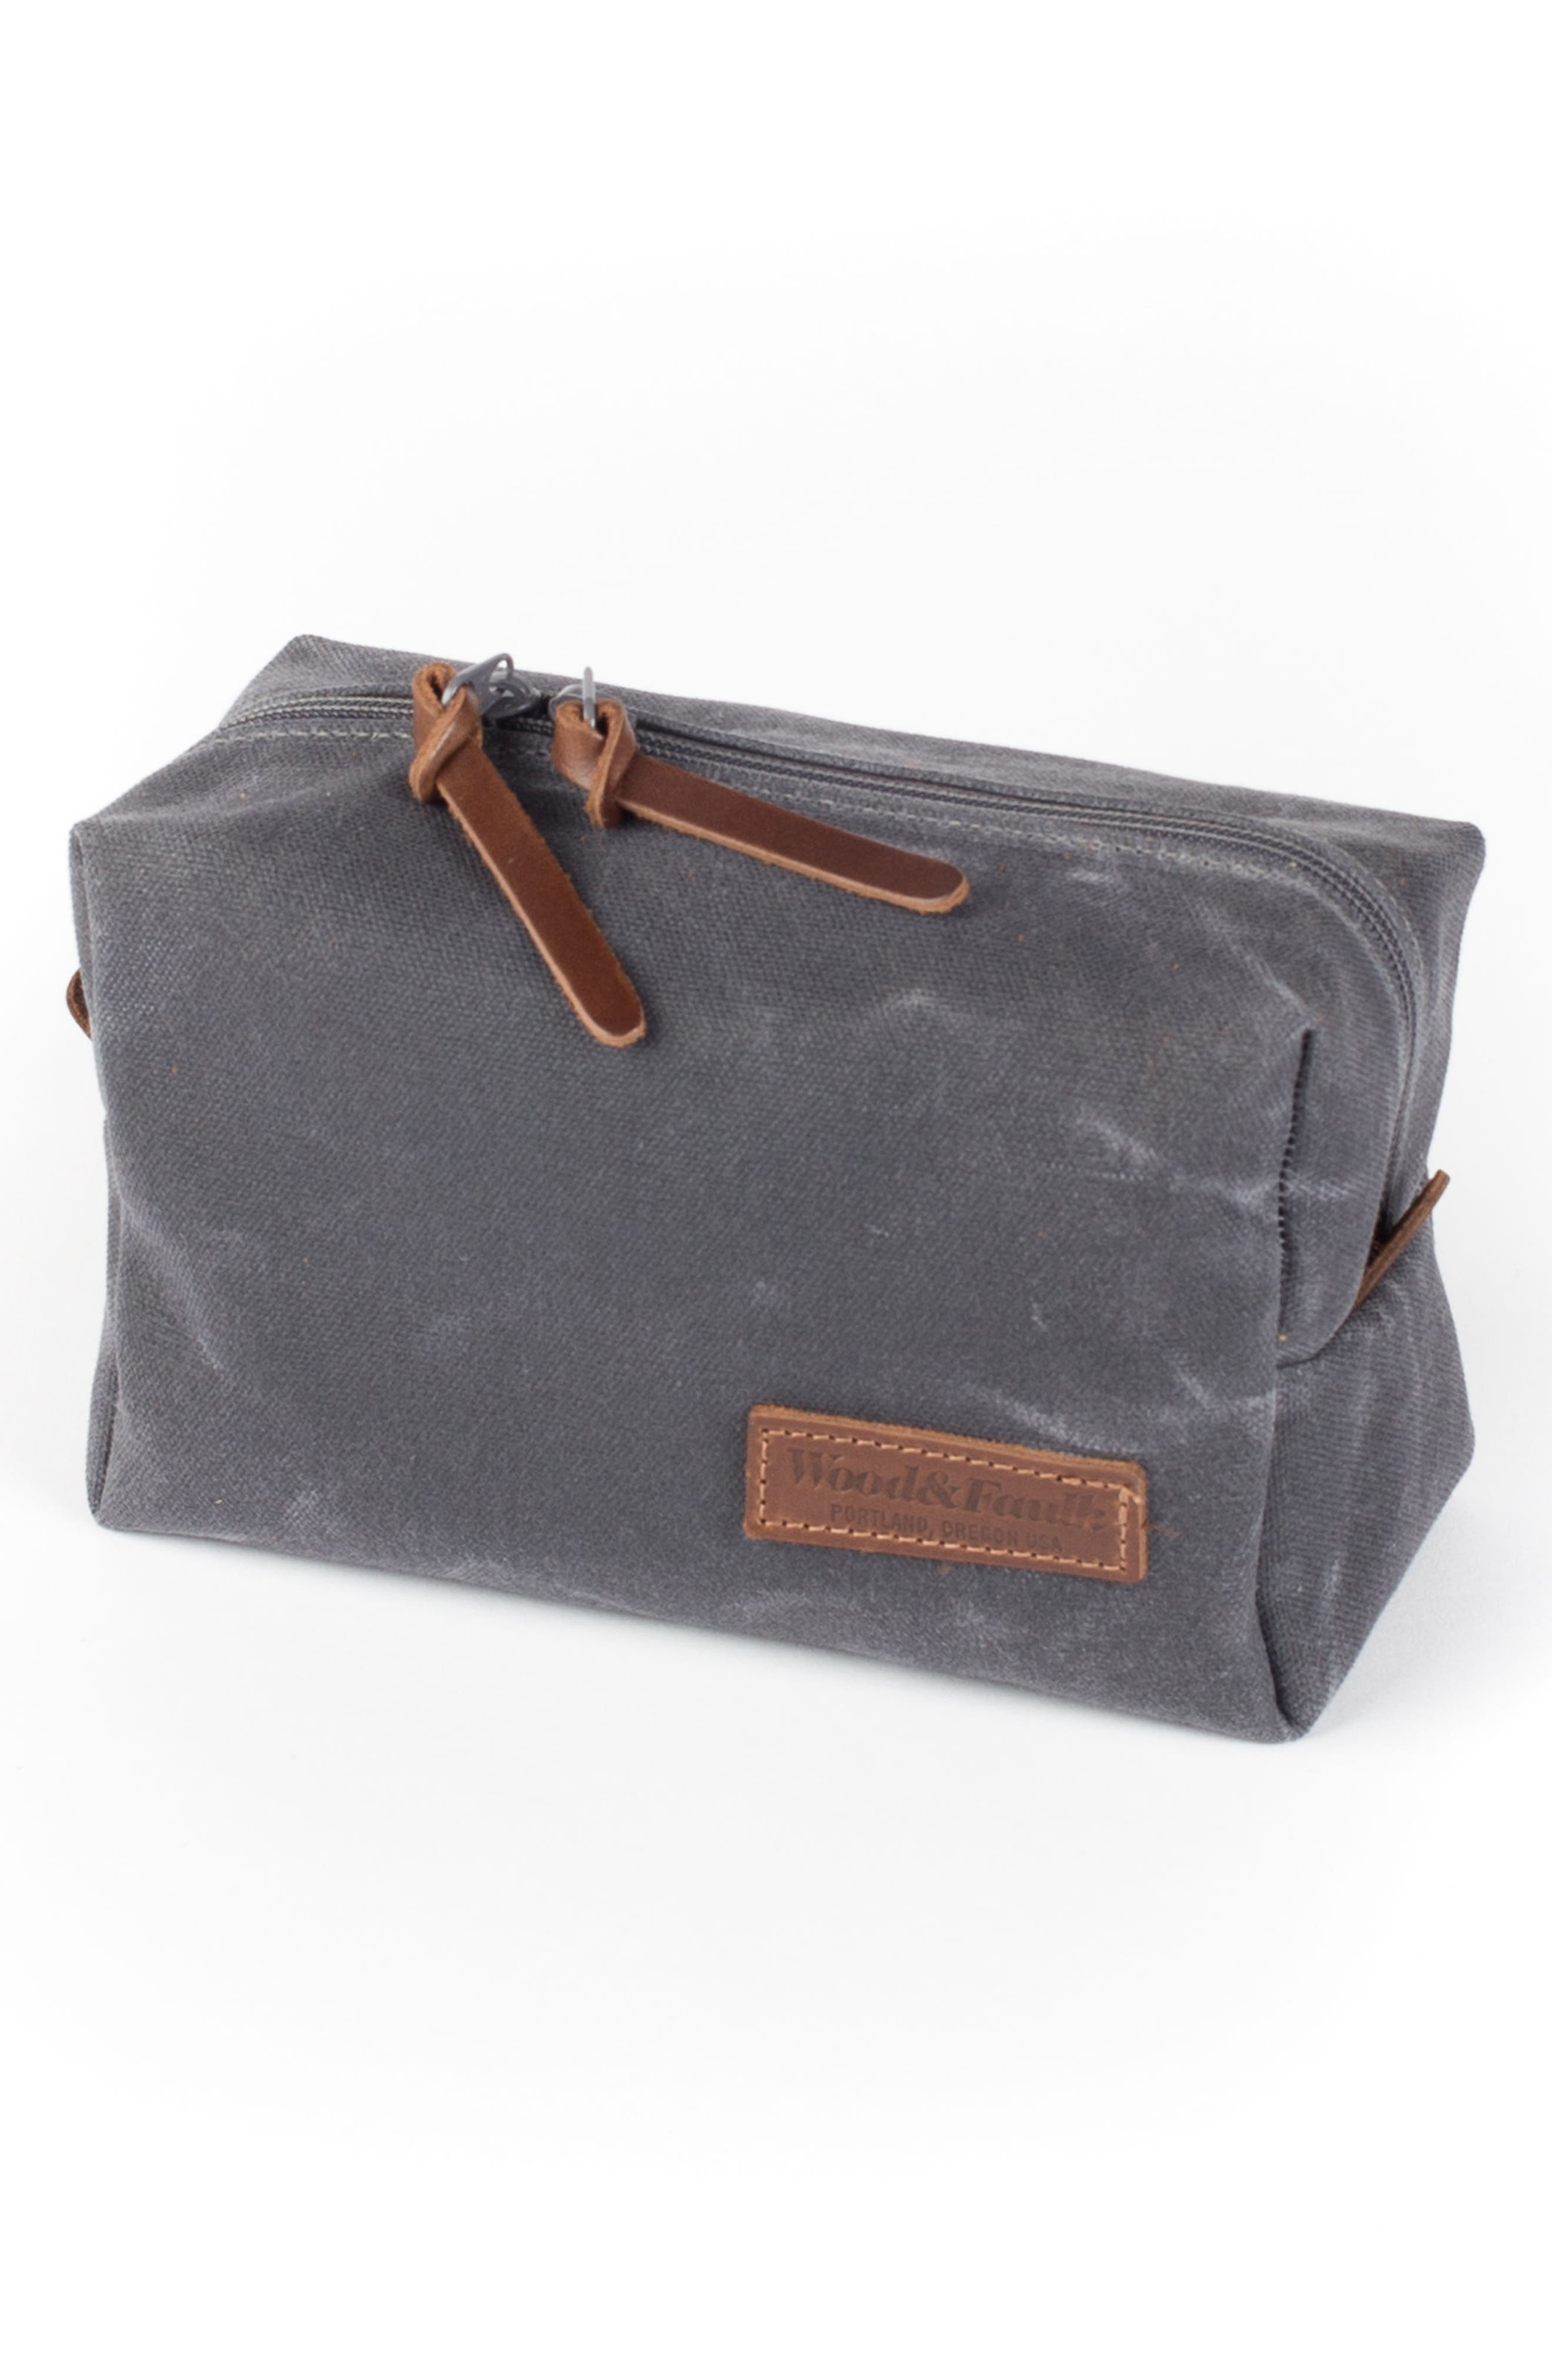 Traverse Waxed Canvas Dopp Kit,                             Alternate thumbnail 4, color,                             021